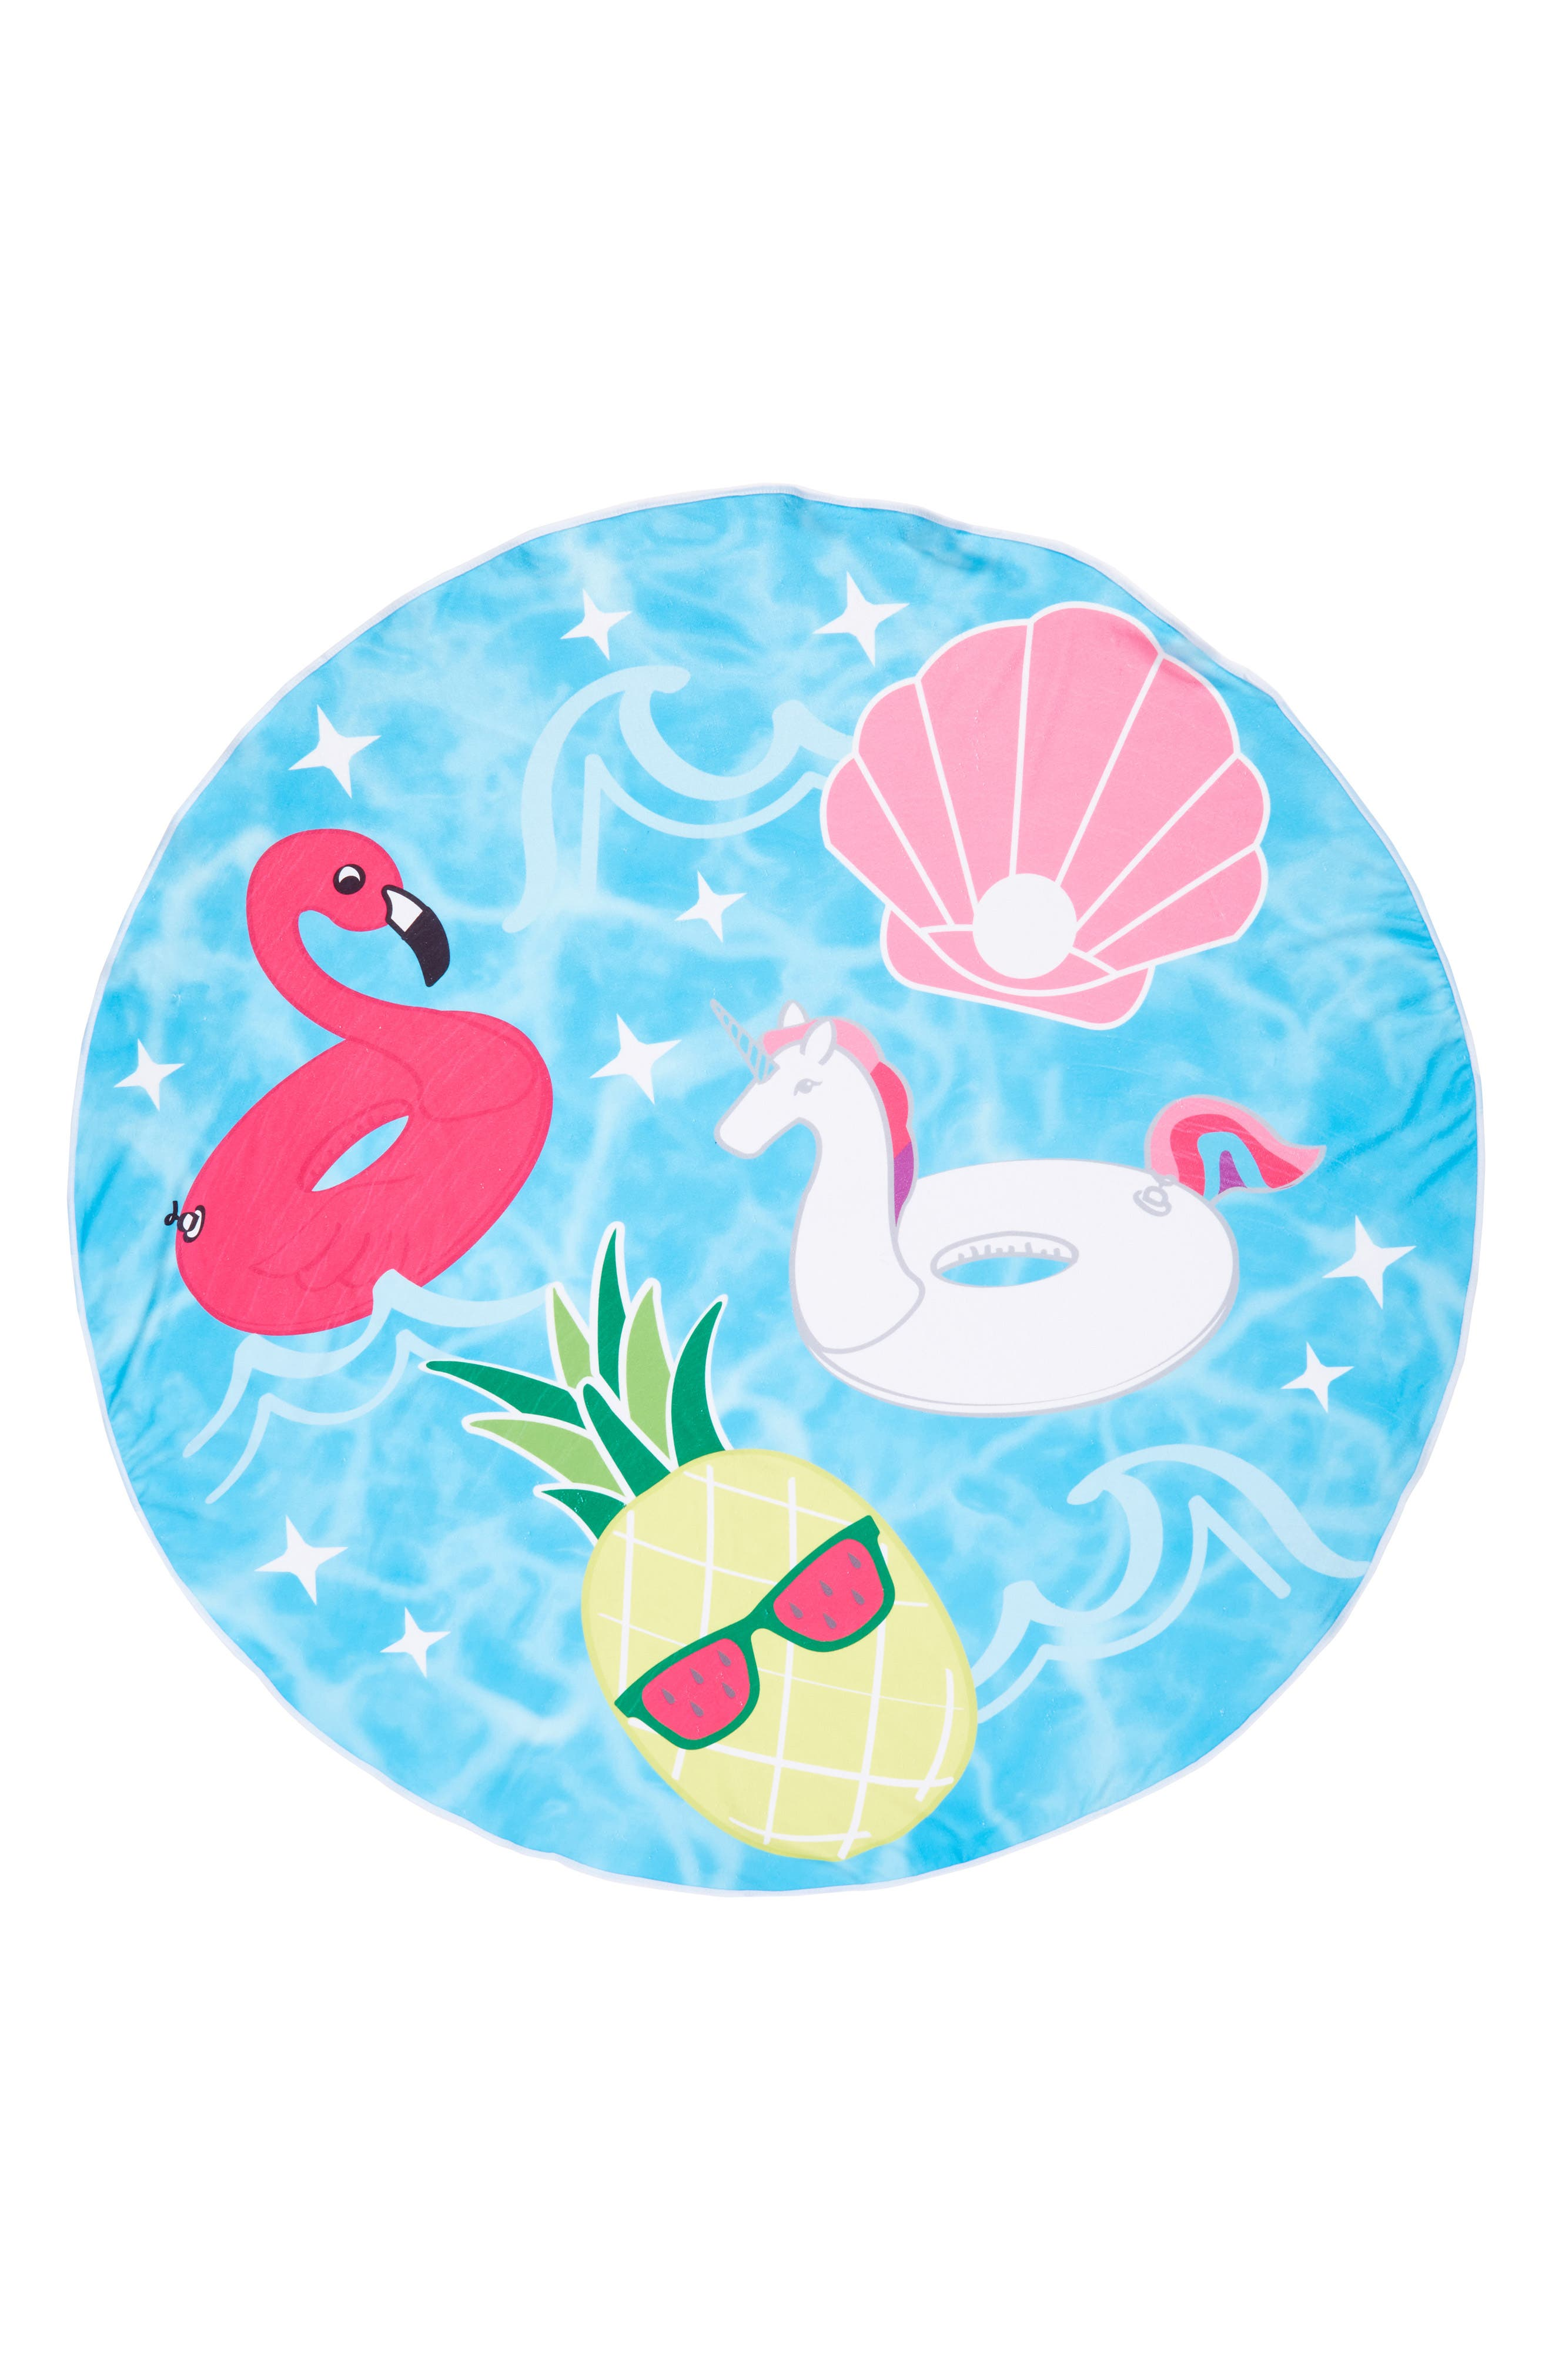 Cool Pool Round Towel,                             Main thumbnail 1, color,                             475